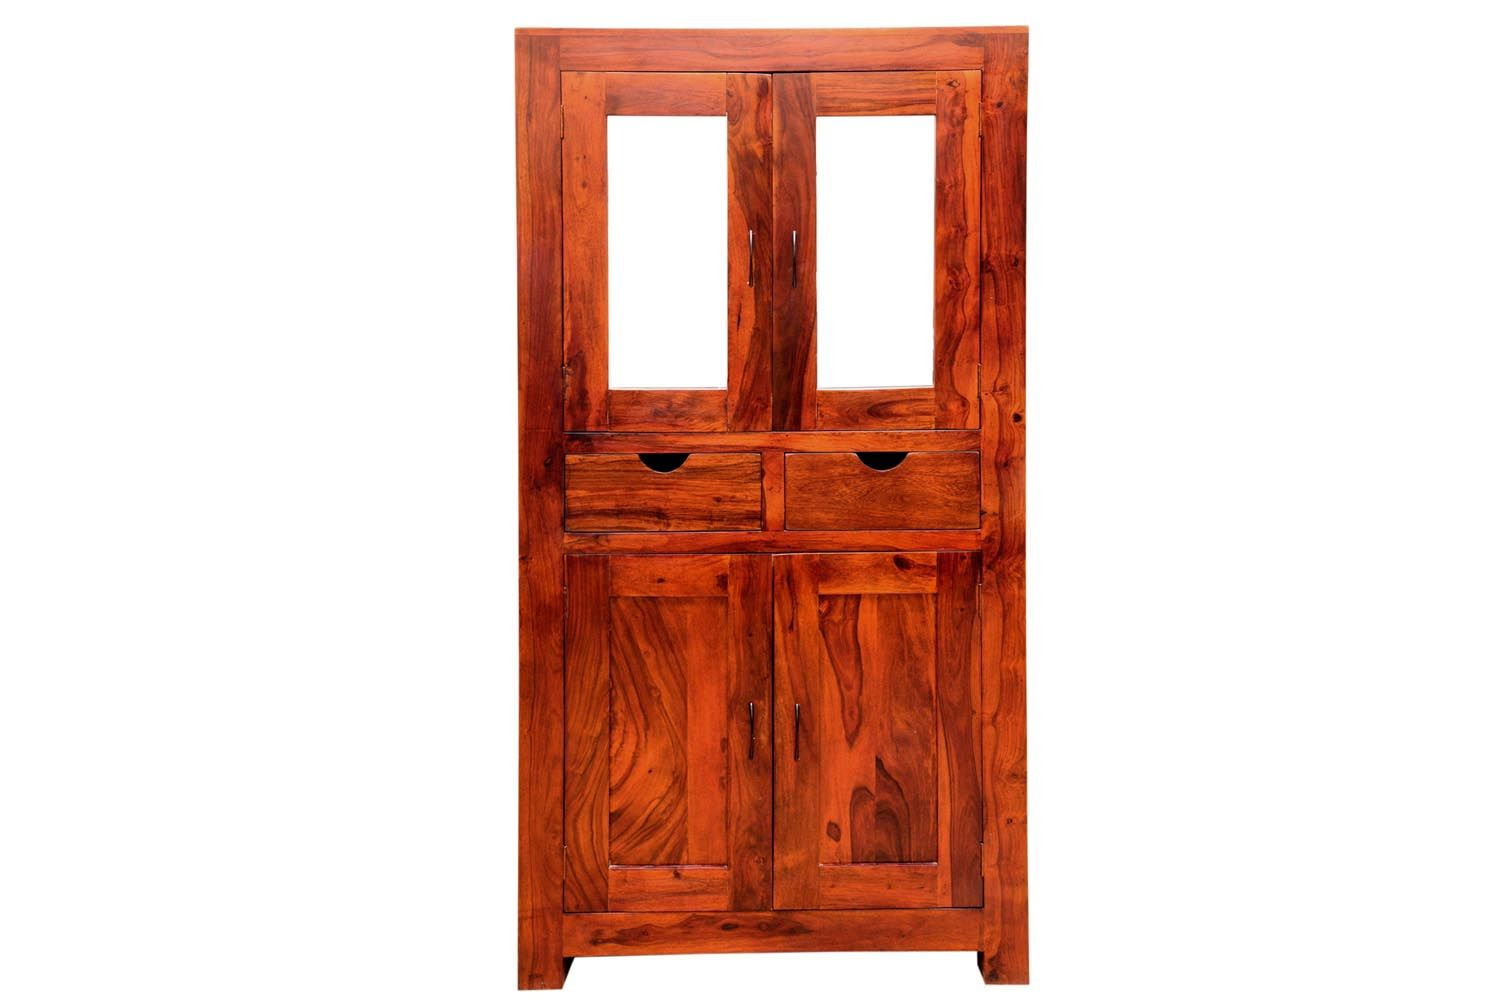 Celestial Four Door And Two Drawer Teakfinish Almirah Is Made By Sheesham Wood With Light Teak